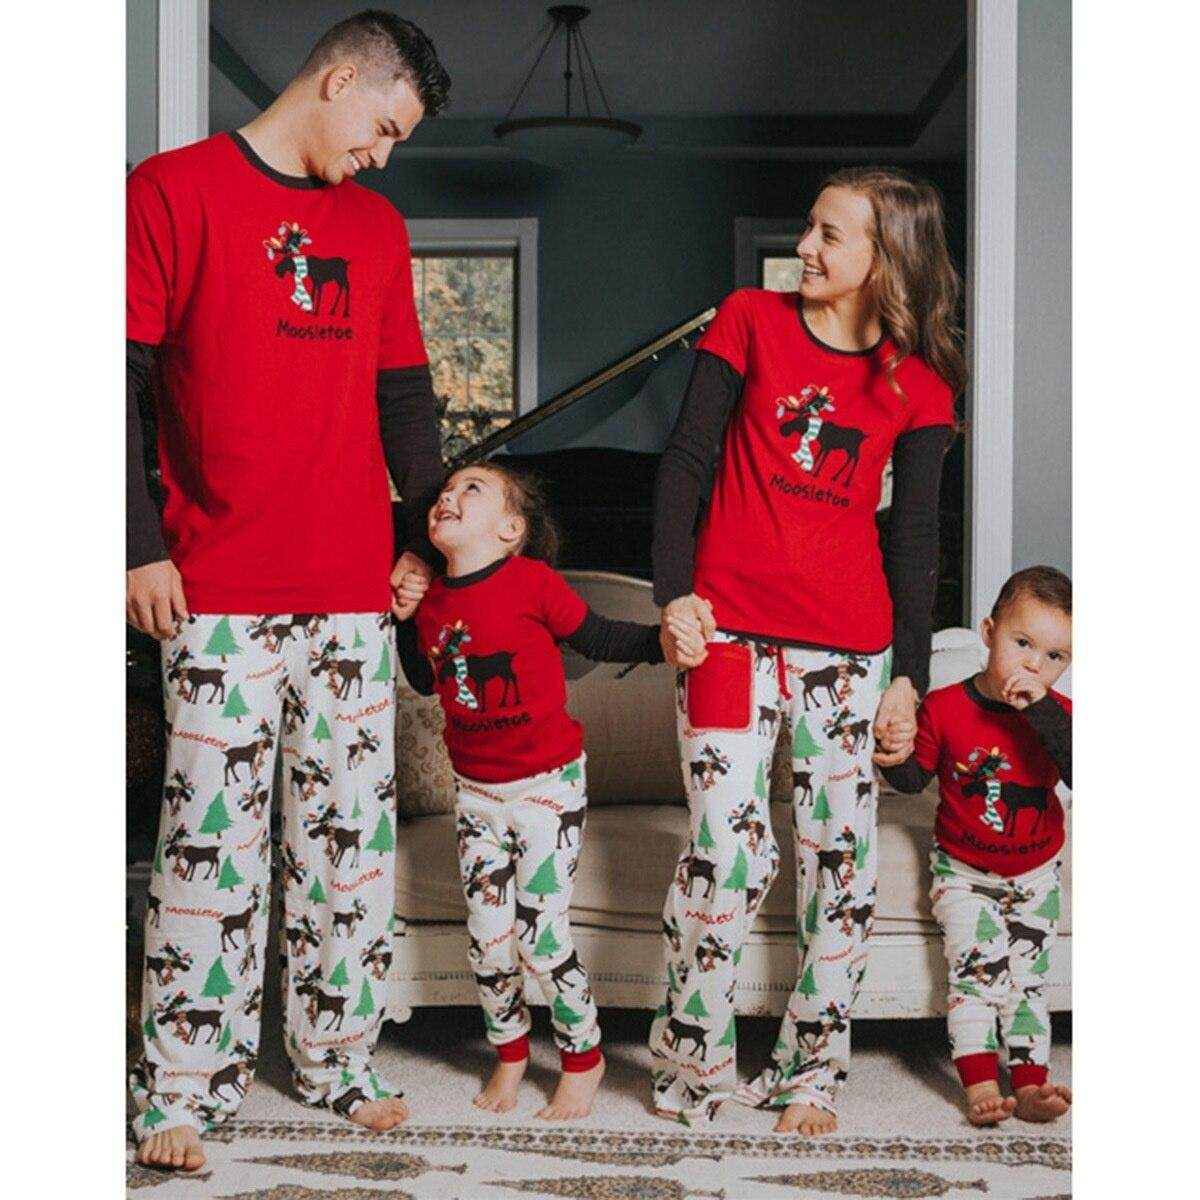 Family Christmas Pajamas With Baby.Family Christmas Pajamas Print Long Sleeve Parent Child Suit Children Sleepwear Mom Dad Baby Set Mommy And Me Clothes Mom